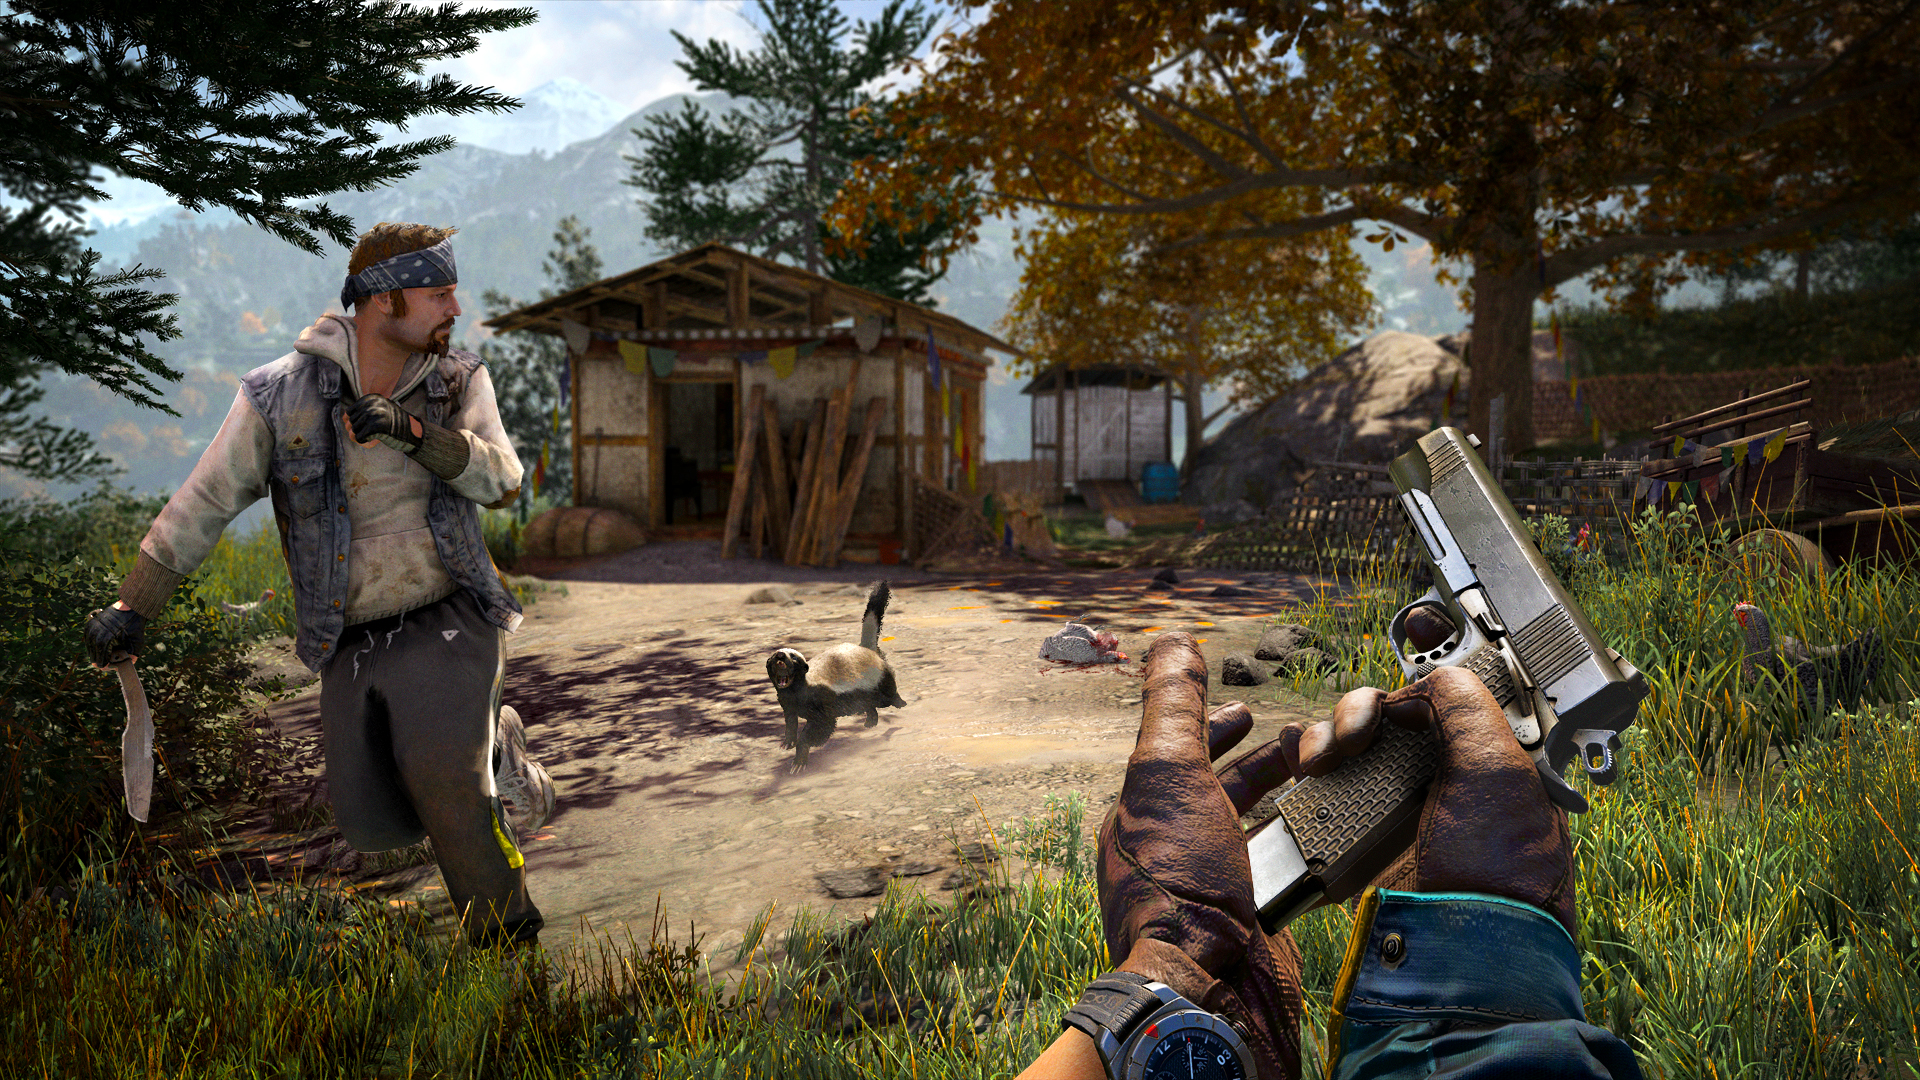 Far Cry 2 Completo Pc Utorrent Free - freedomsenior